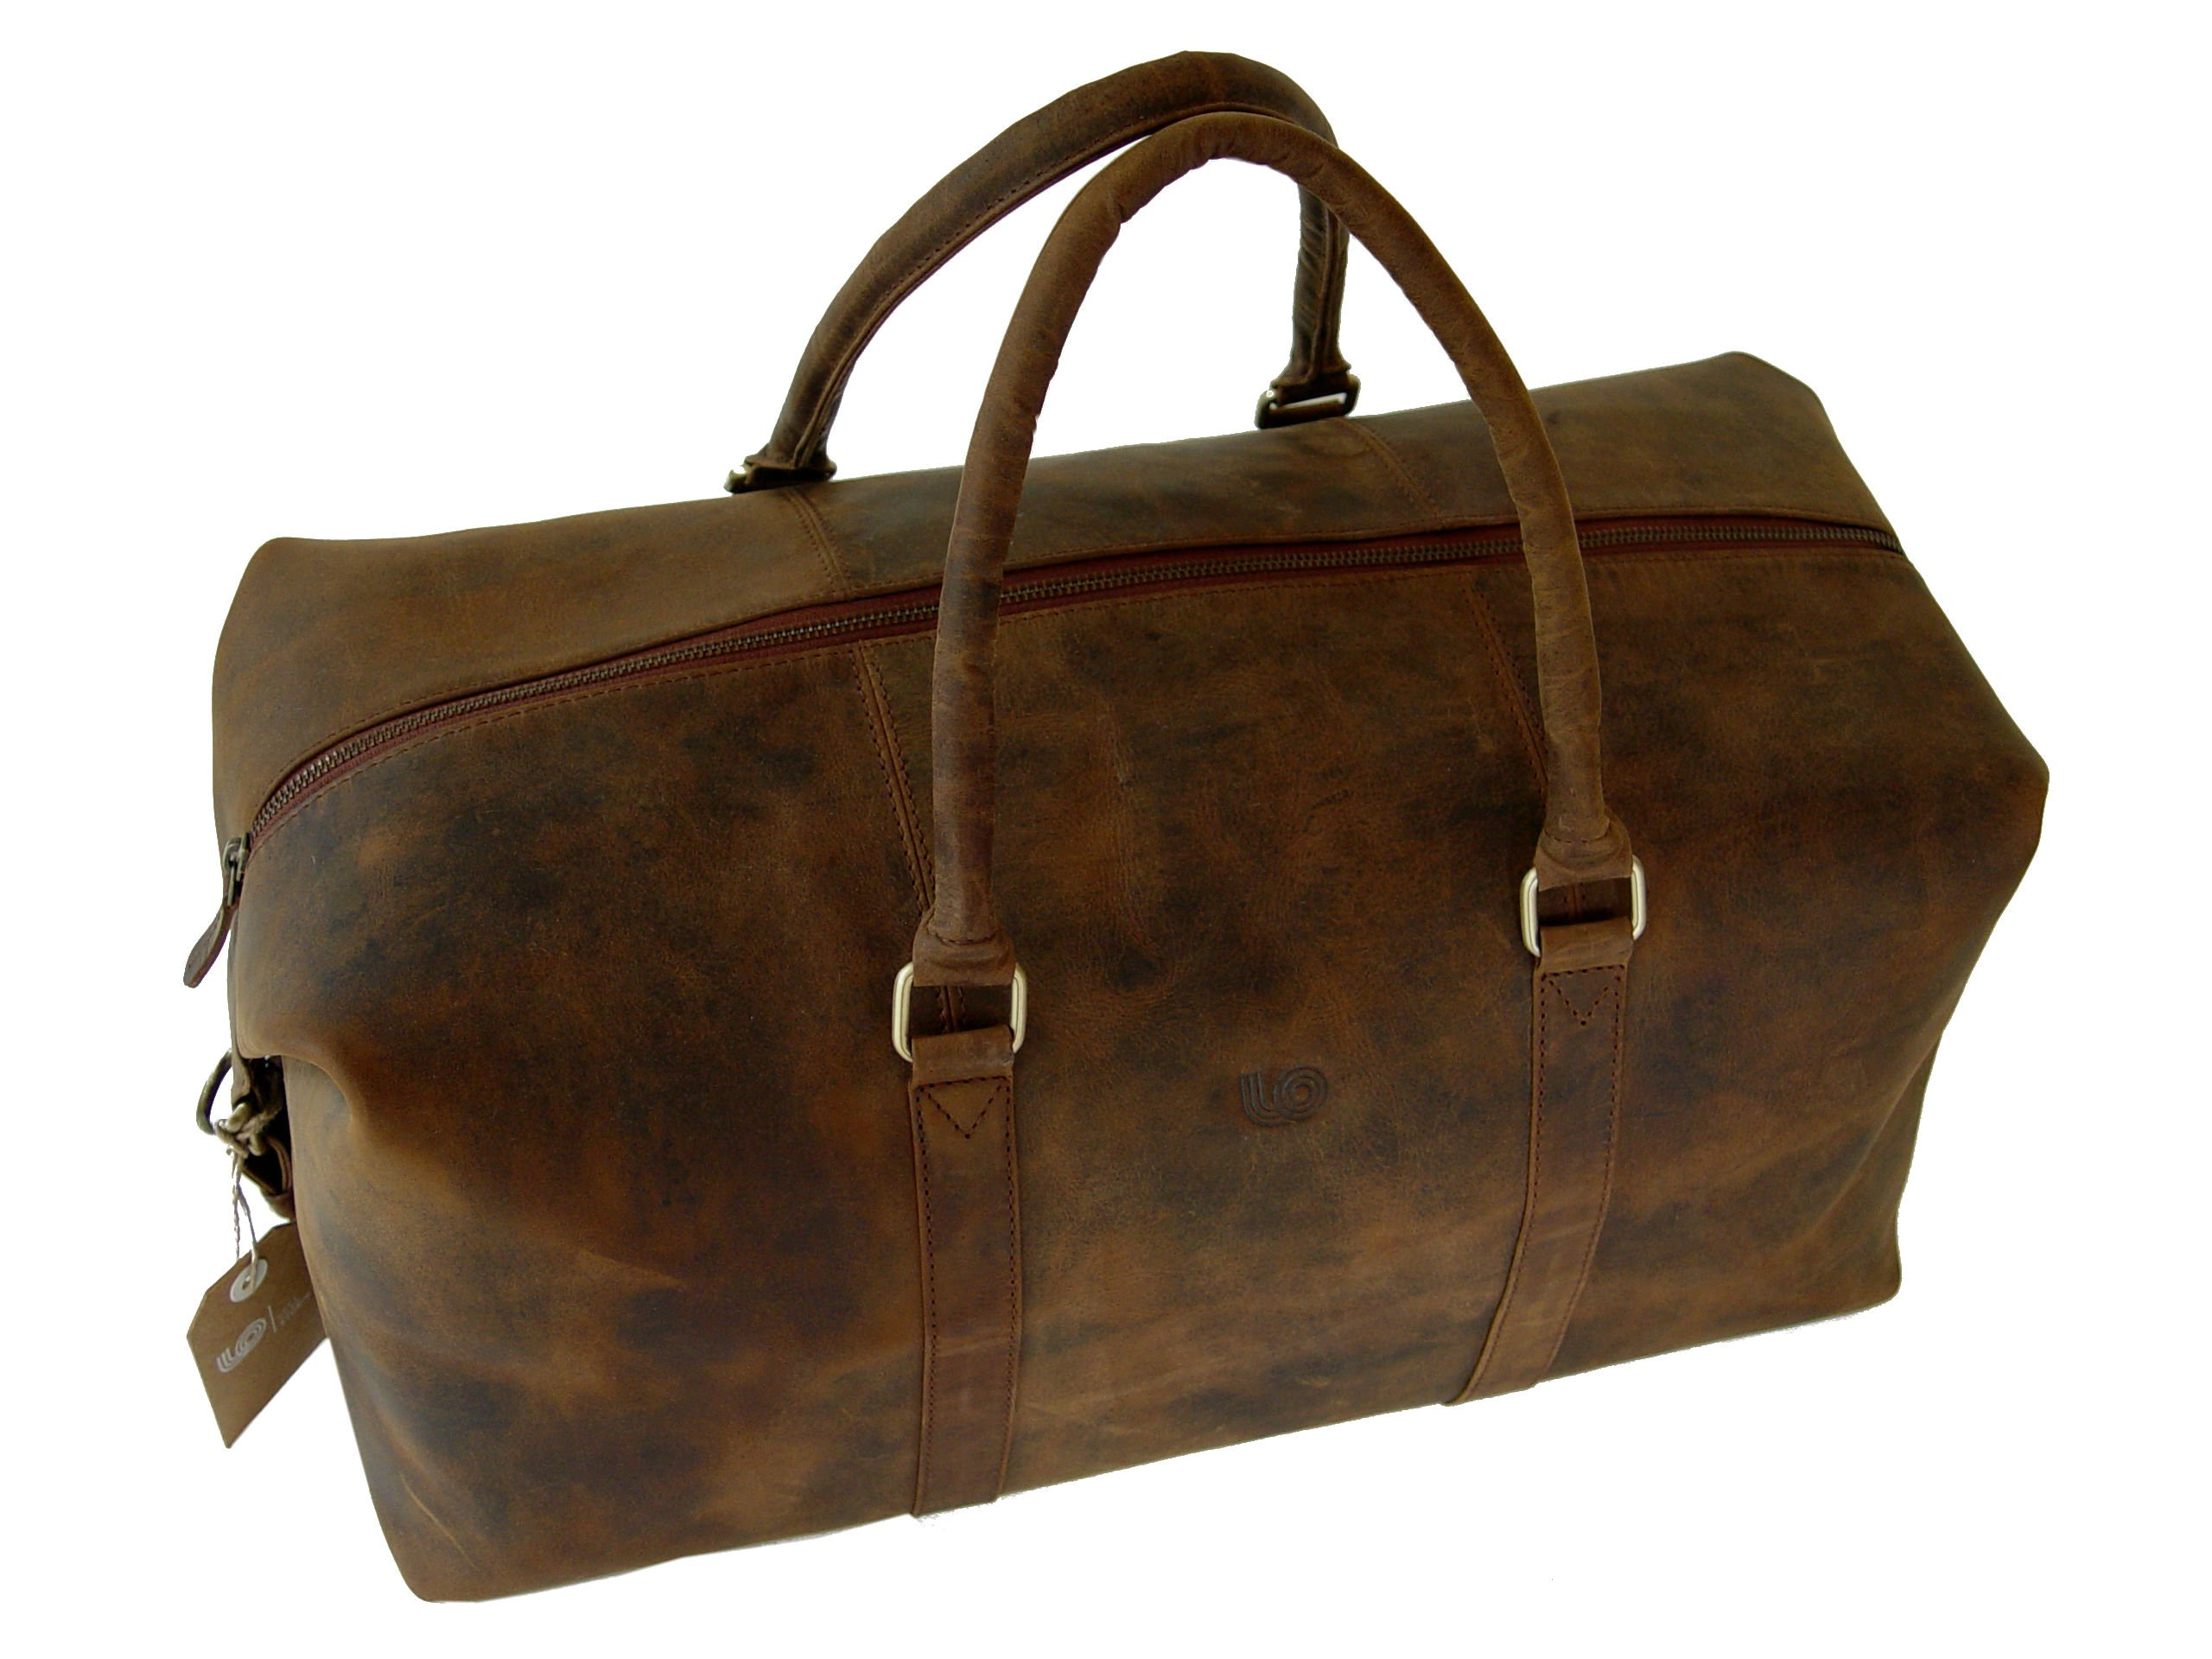 LeftOver Studio Expandable Weekend Overnight Travel Duffel Bag in Thick Oil Pull Hunter Water Buffalo Leather by Leftover Studio (Image #3)